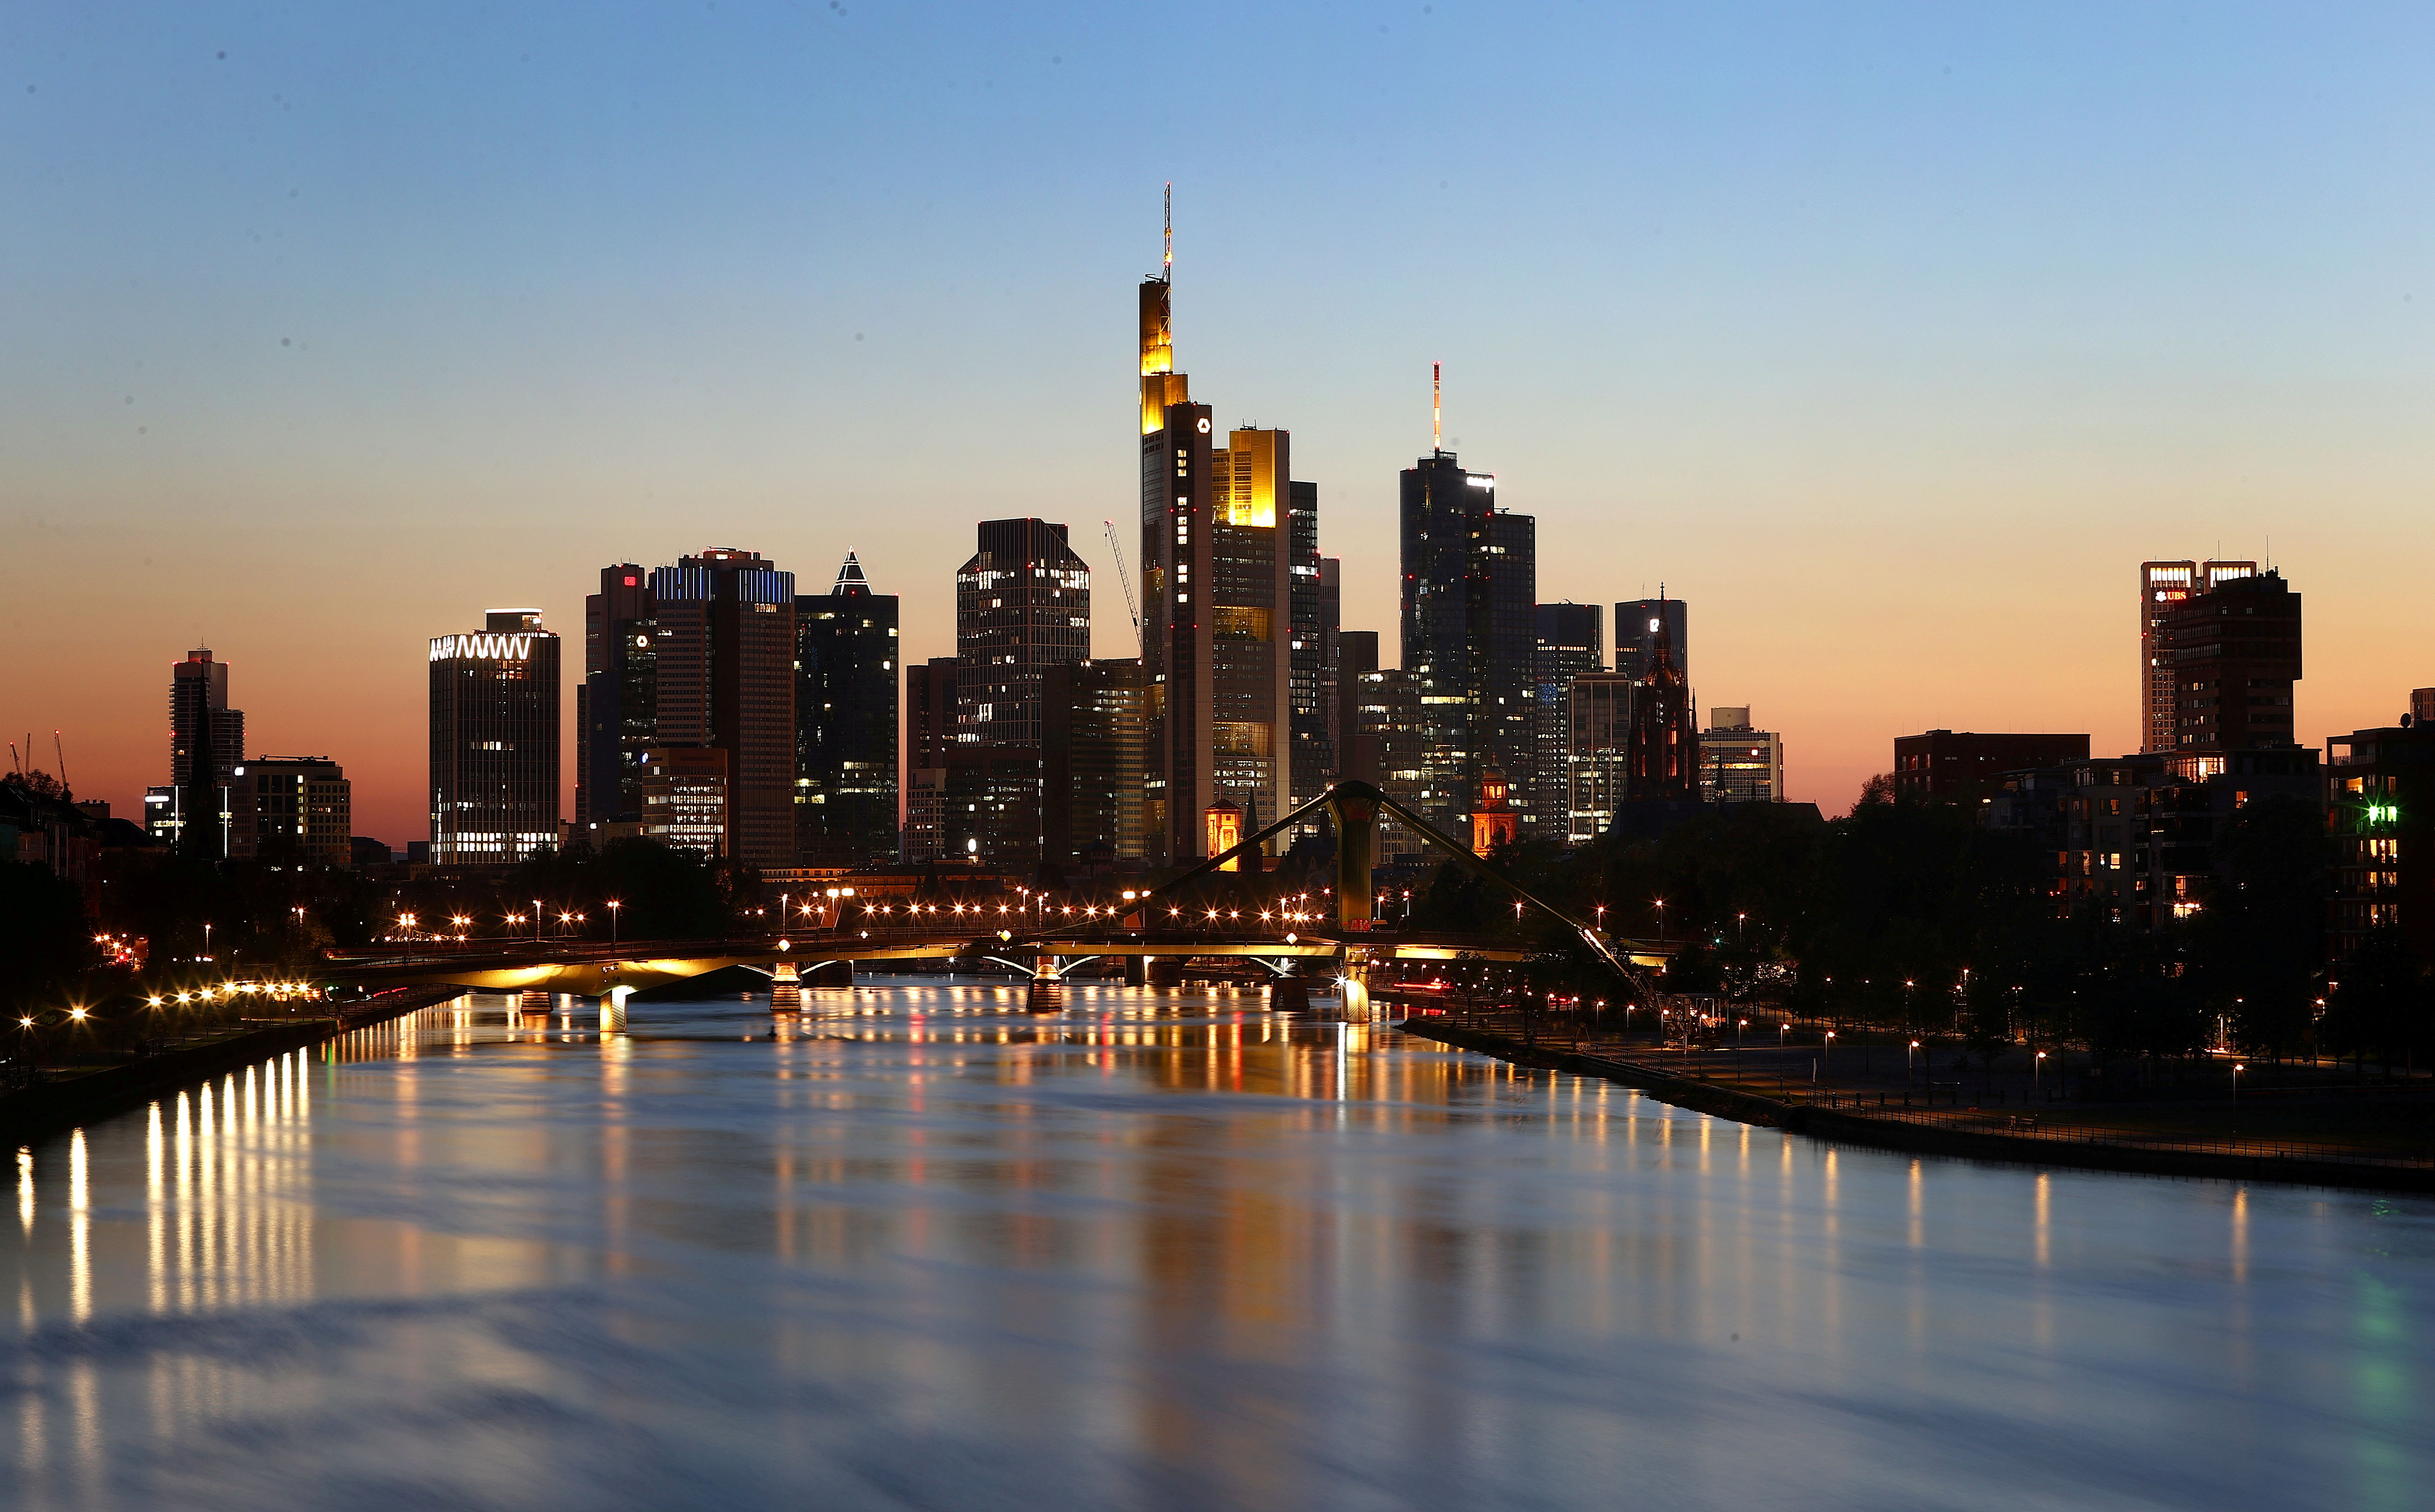 The skyline with the financial district is photographed during sunset in Frankfurt, Germany, April 22, 2020.   REUTERS/Kai Pfaffenbach